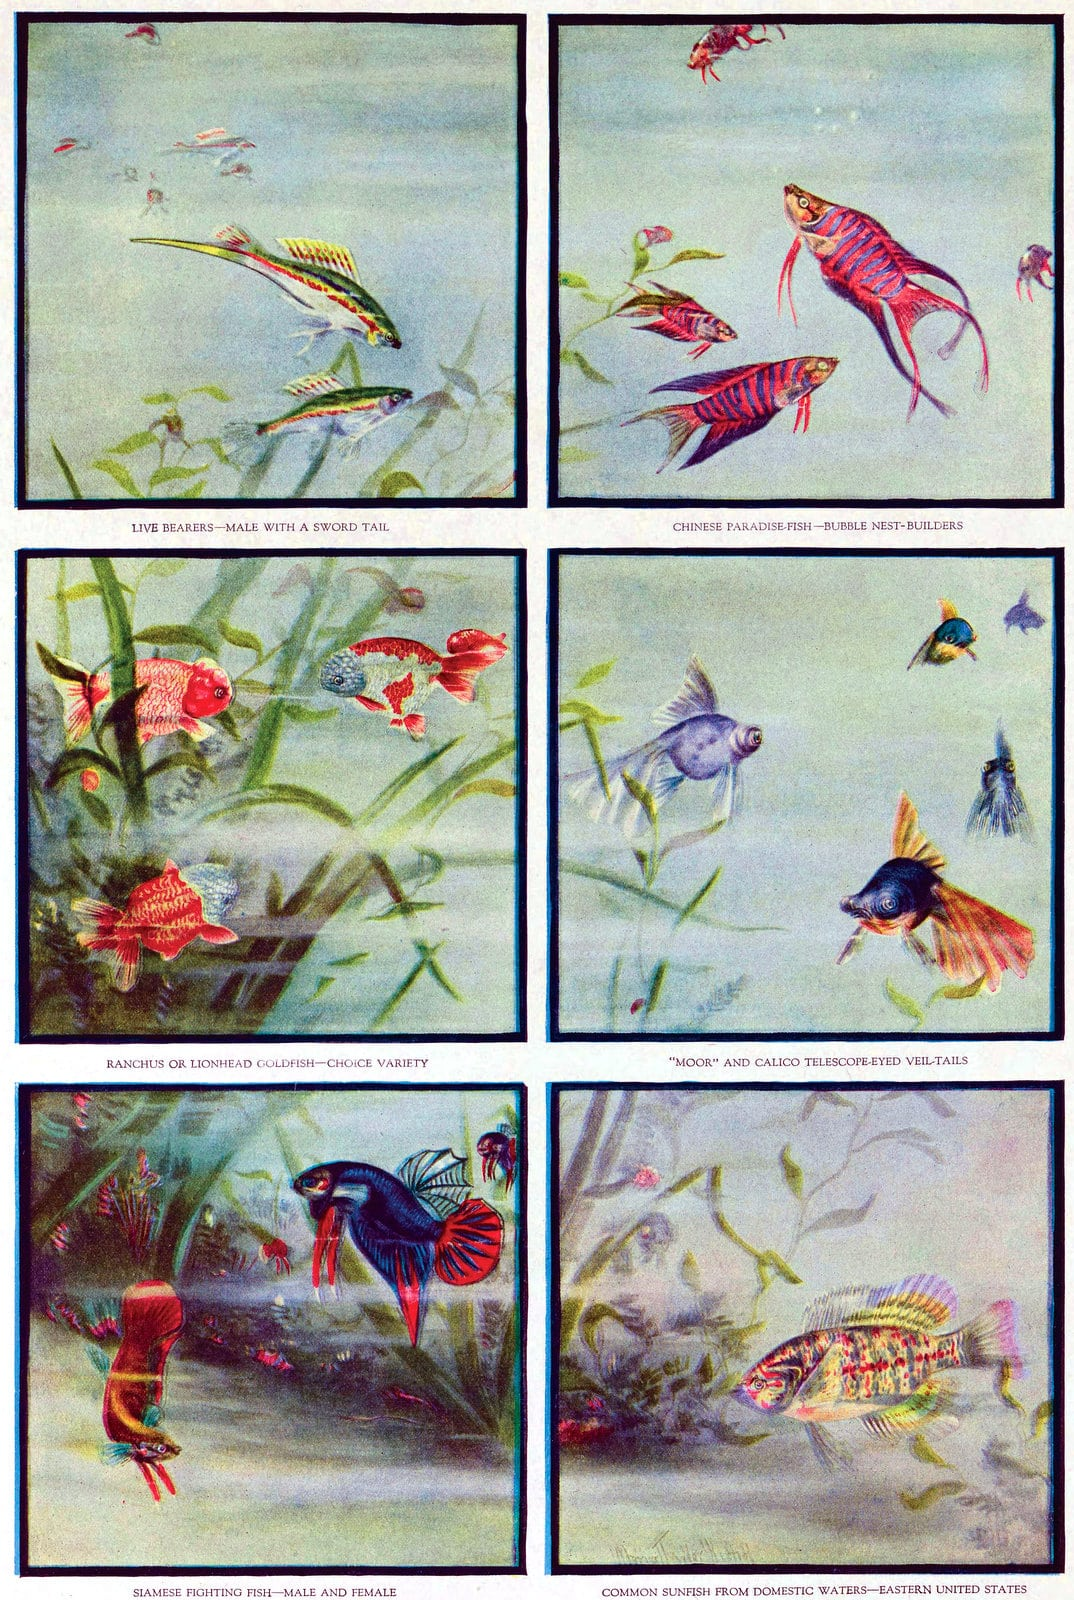 Vintage tropical fish panel illustrations from 1919